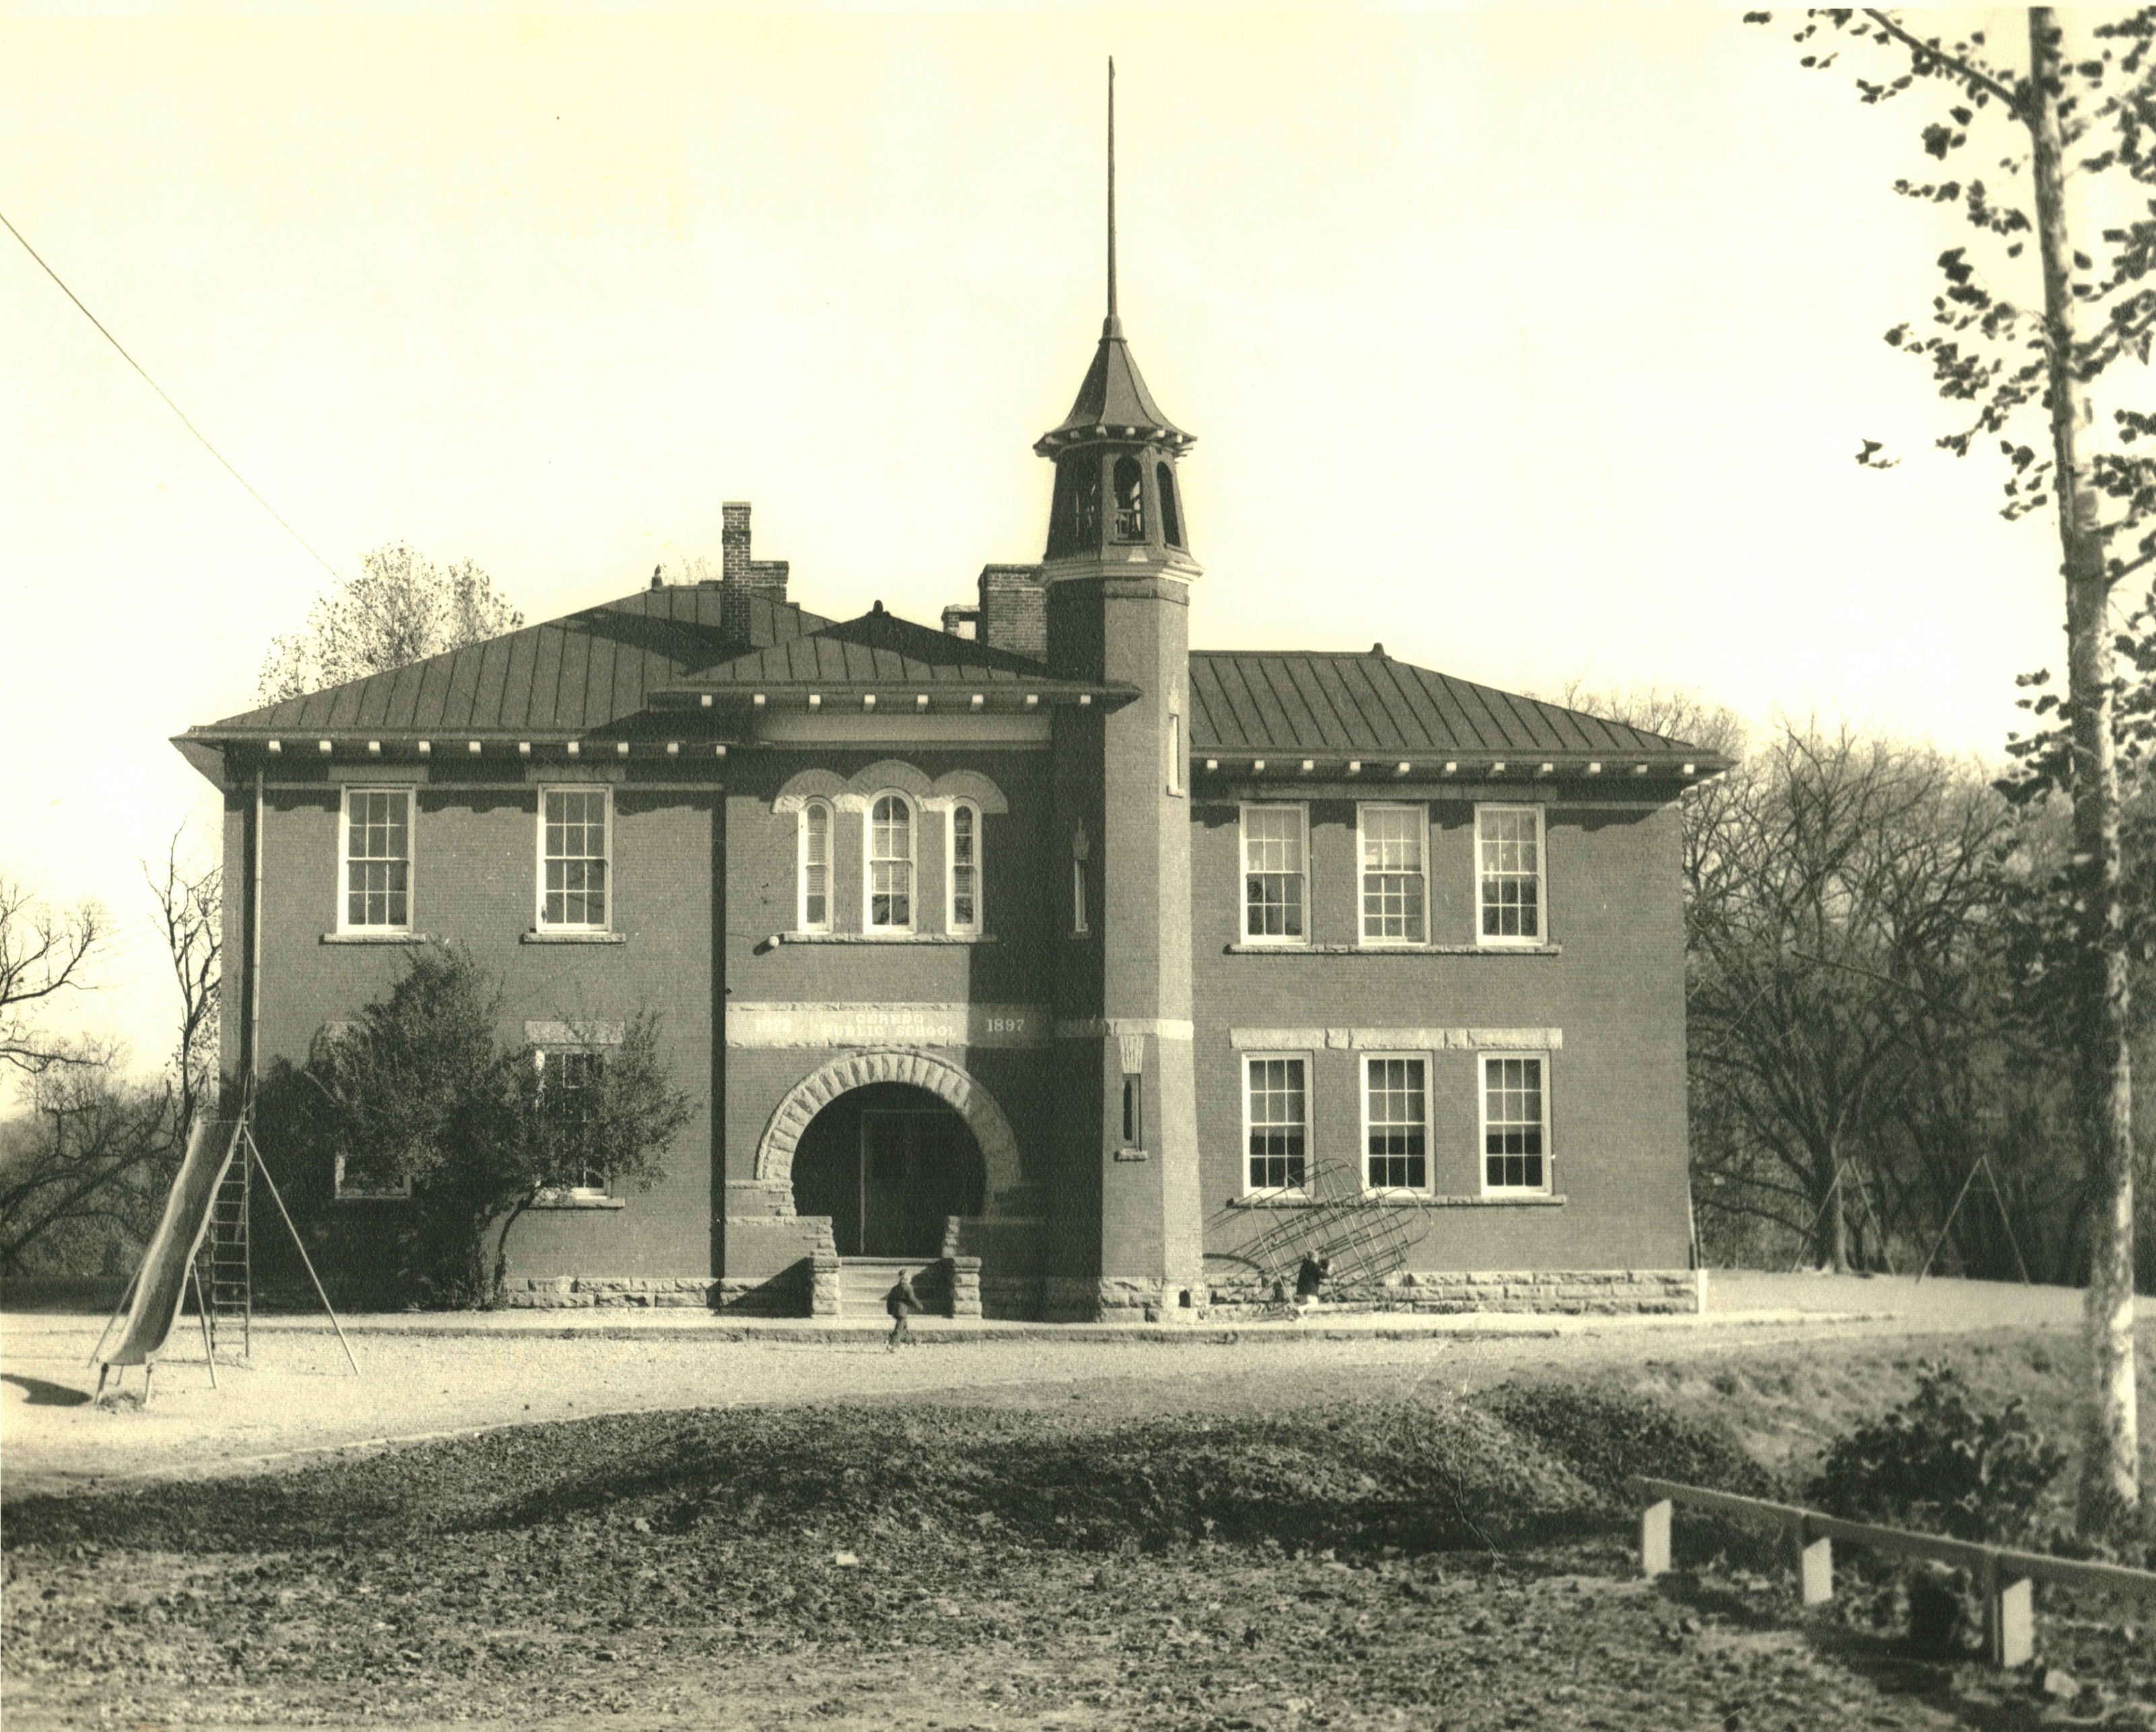 After the original school building burned in 1895, a new eight-room brick building was constructed in 1897. Image courtesy of the Ceredo Historical Society Museum.